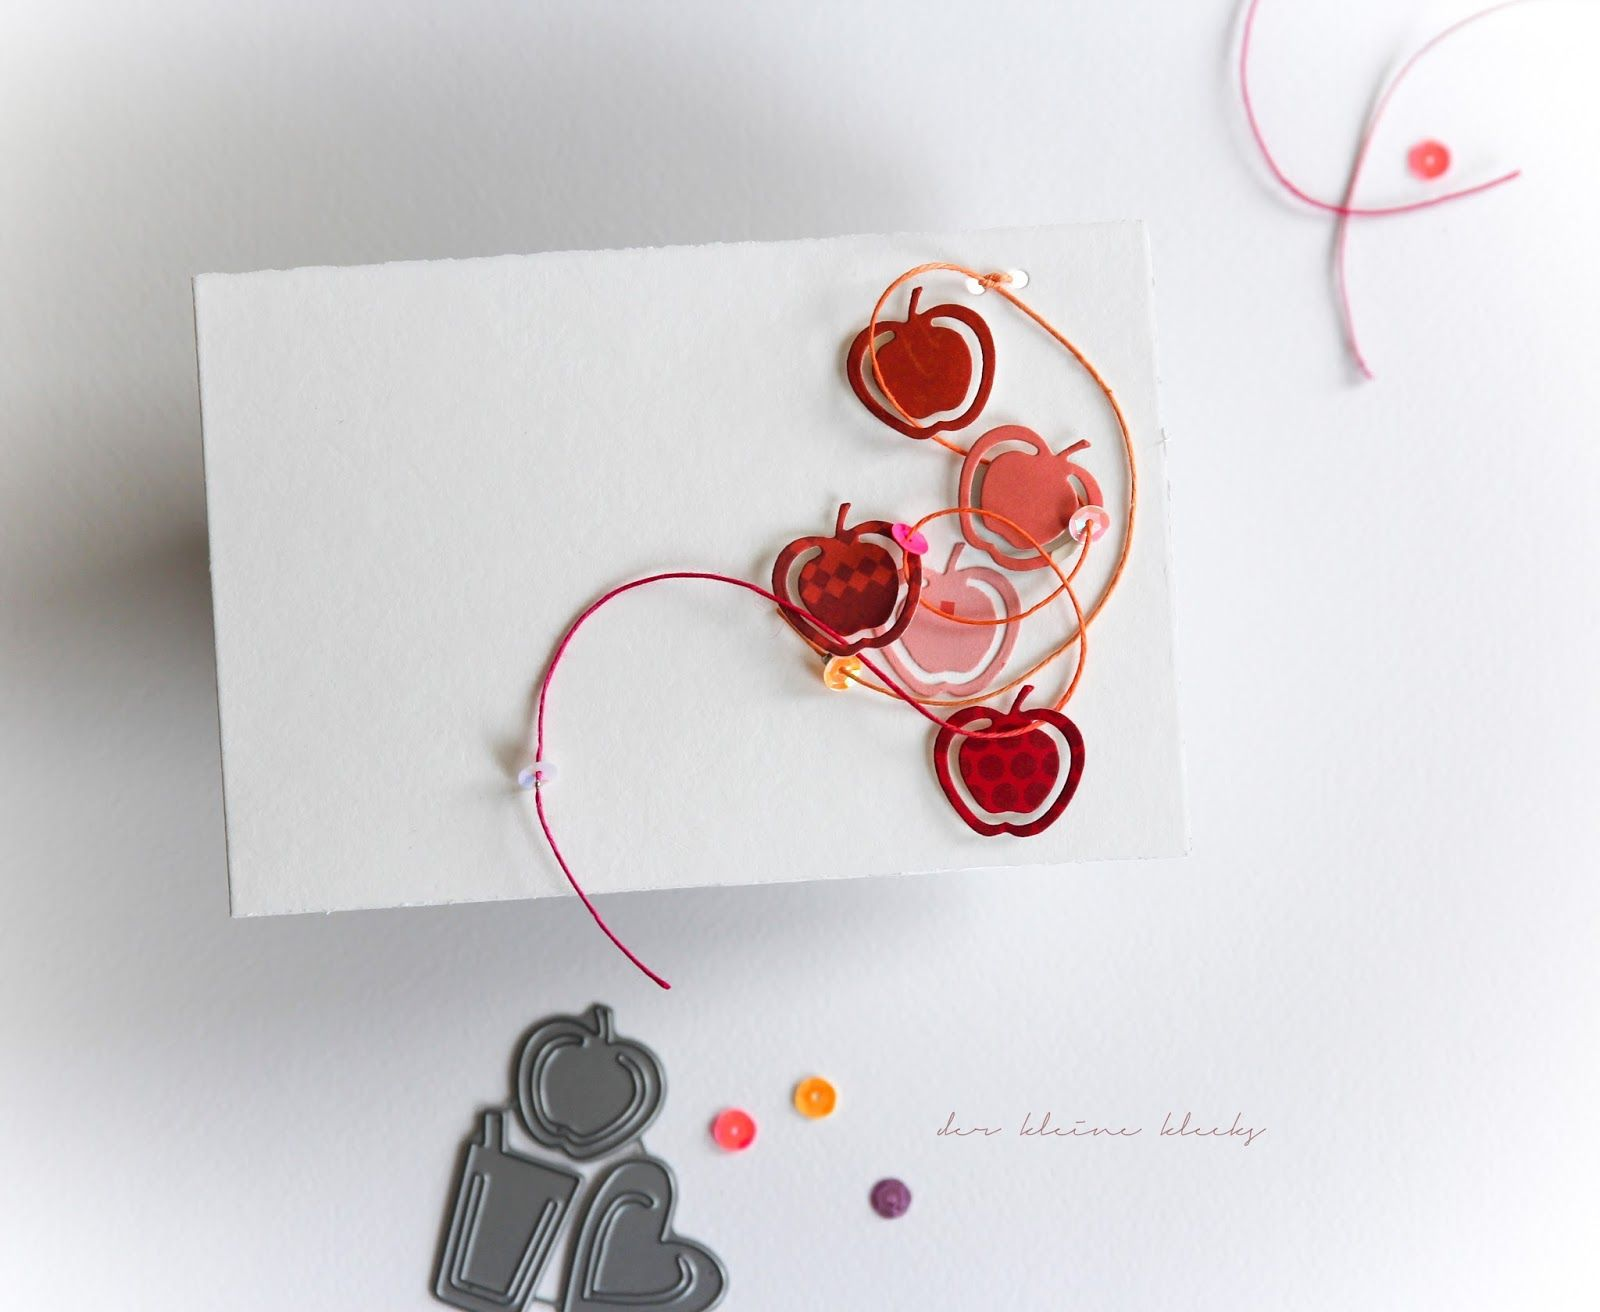 der kleine klecks Cards, Phone ring, Projects to try